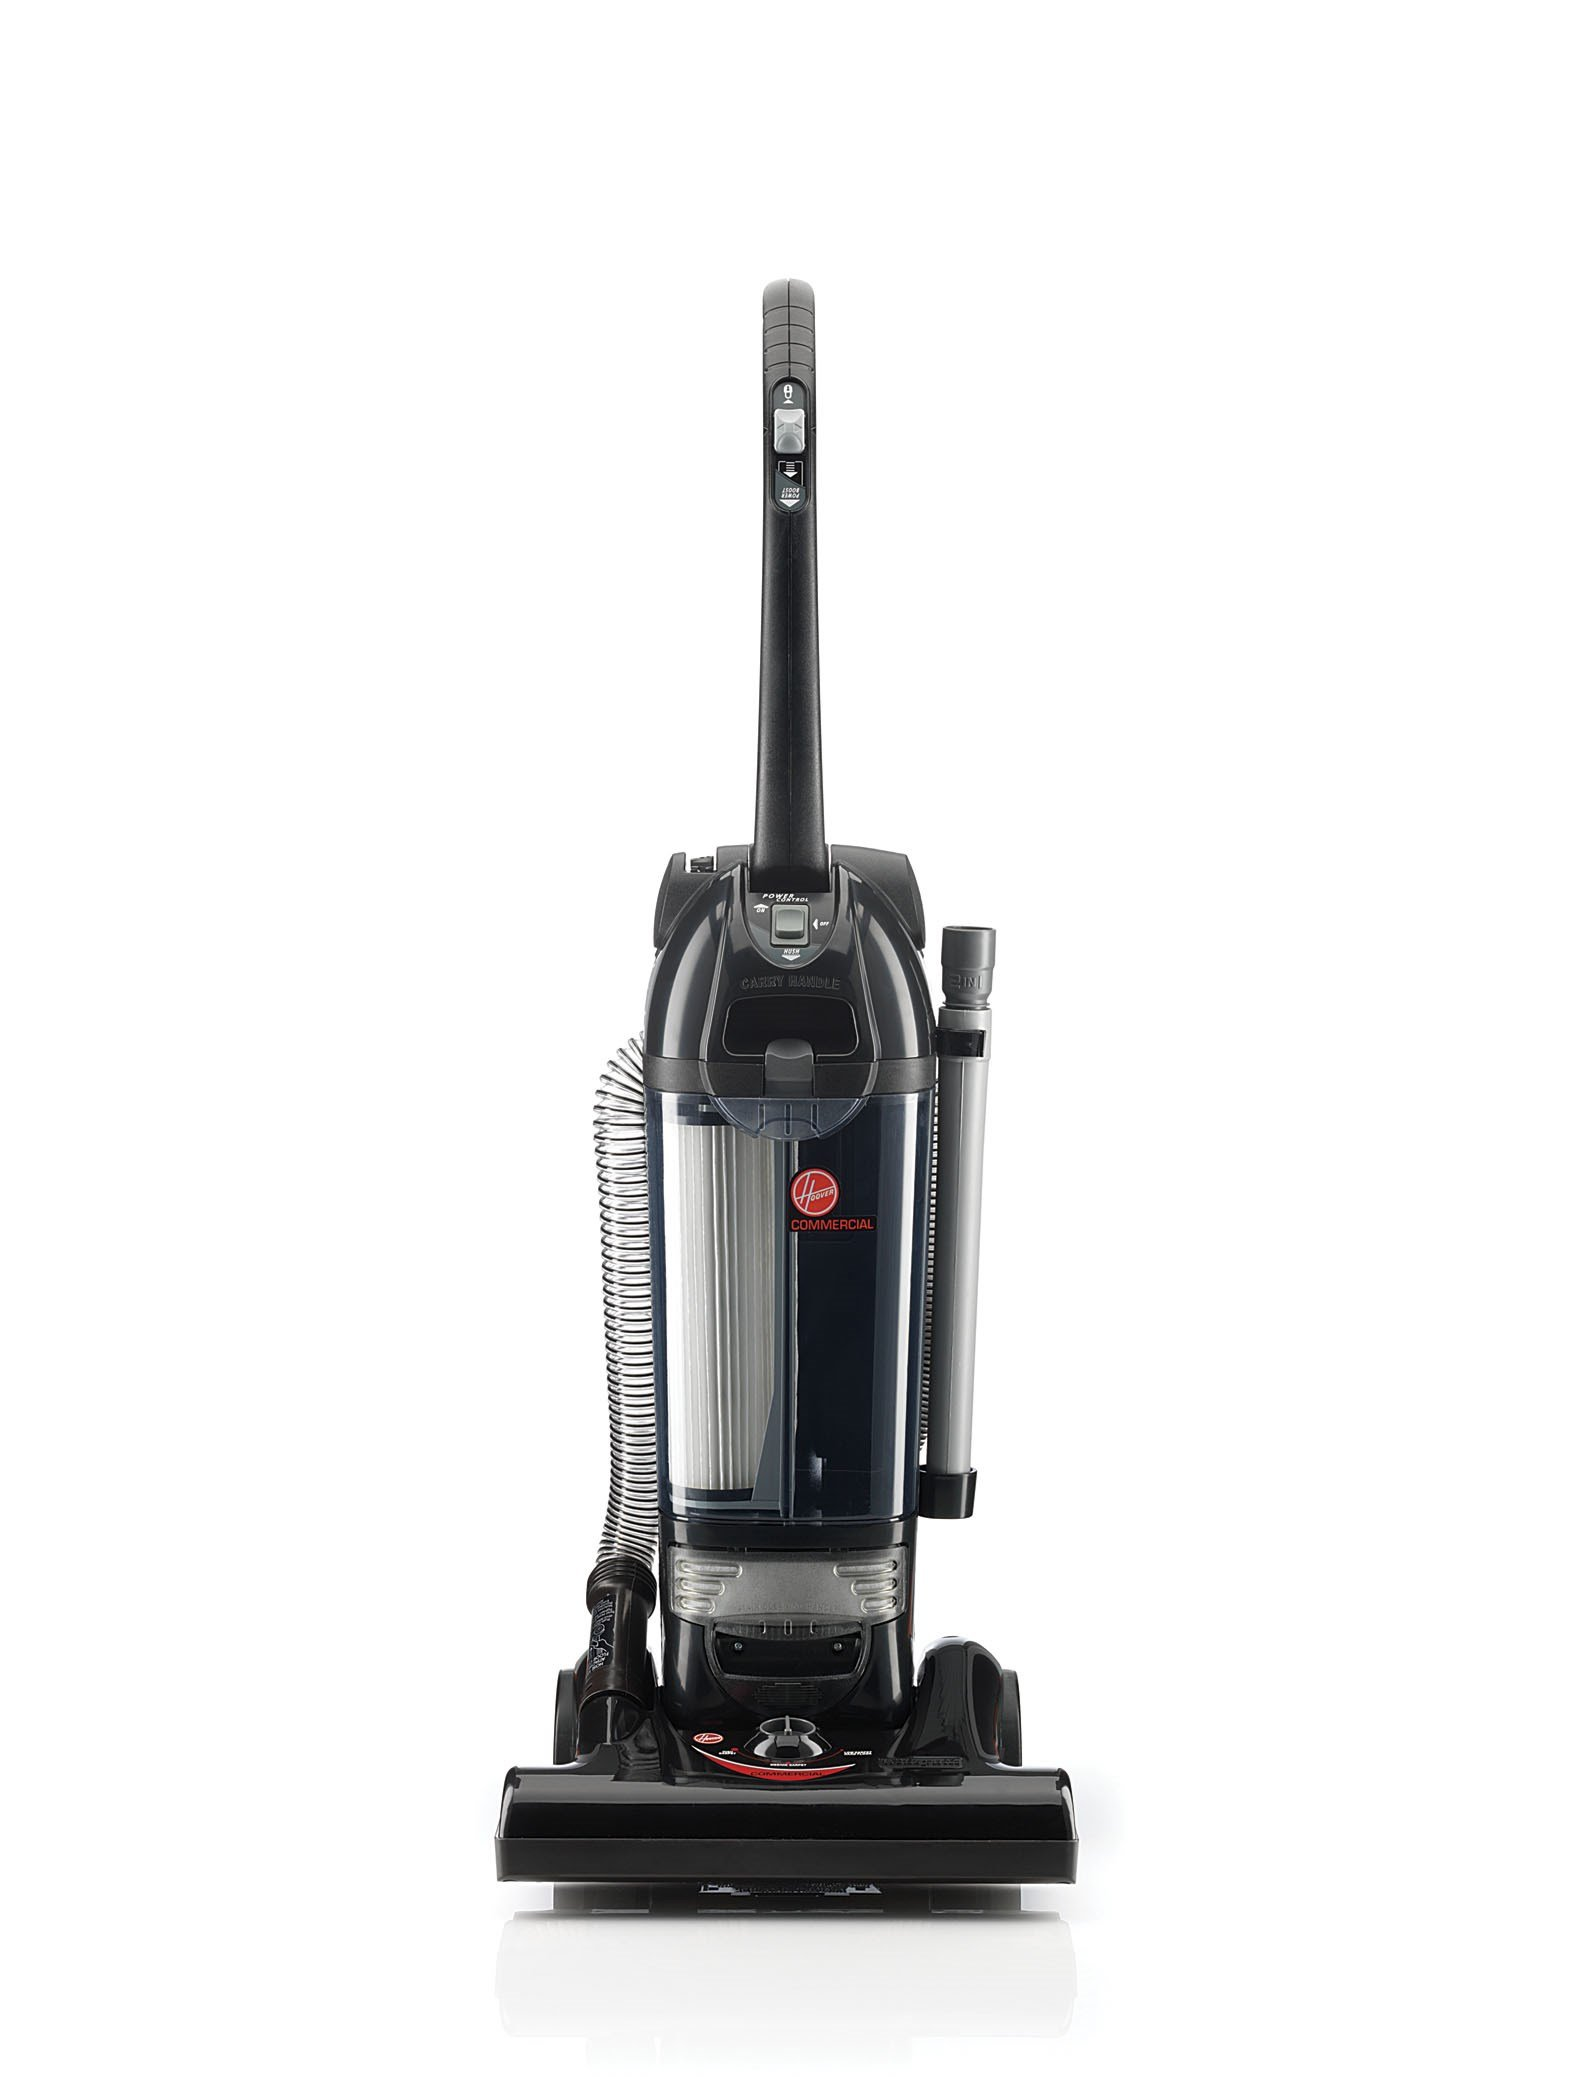 Hoover Commercial C1660-900 Hush Bagless Upright Vacuum Cleaner by Hoover